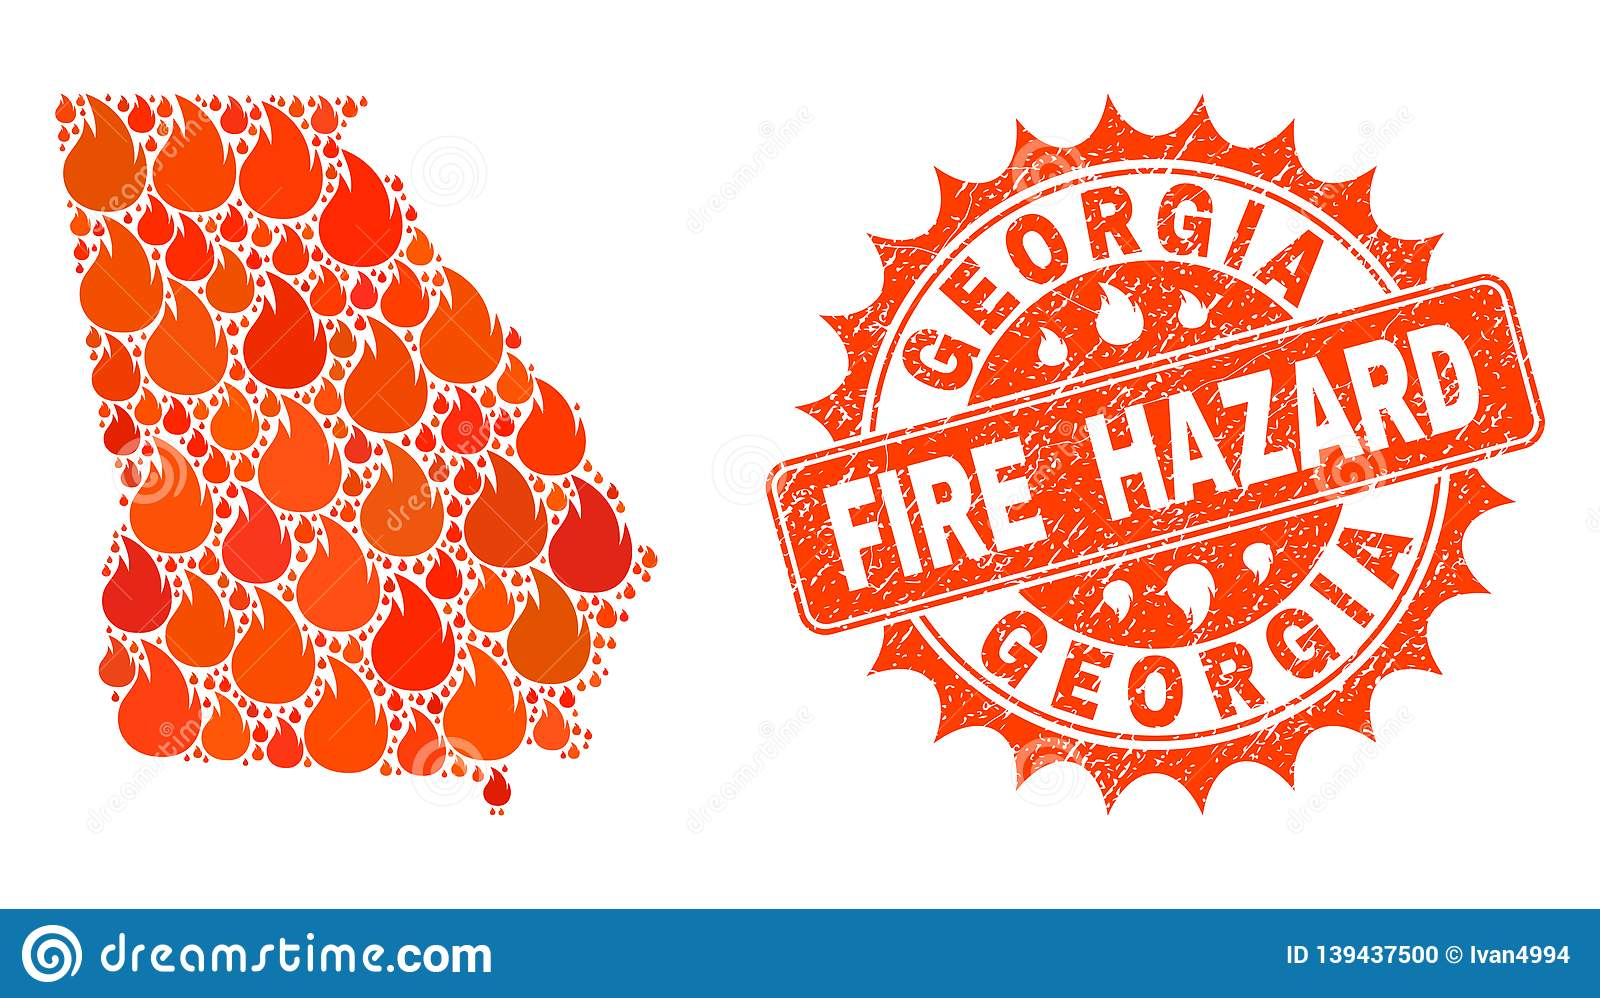 Map Of Georgia Fire.Composition Of Map Of Georgia State Burning And Fire Hazard Grunge